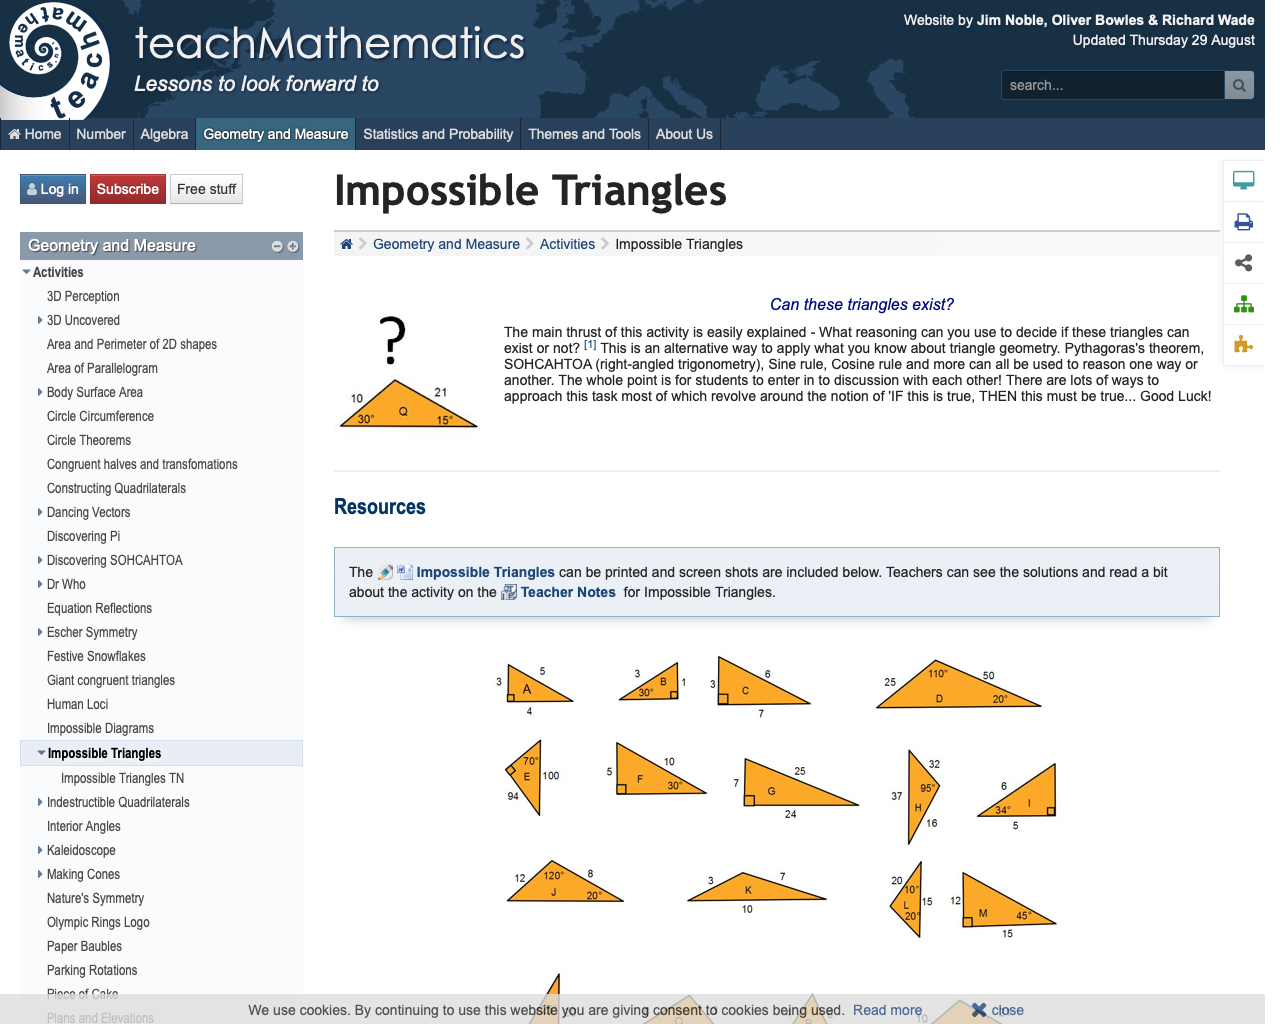 Impossible Triangles Students Use Their Knowledge Of Pythagoras Sohcahtoa Sine And Cosine Rules To Constr Impossible Triangle Impossible Triangles Activities [ 1024 x 1280 Pixel ]